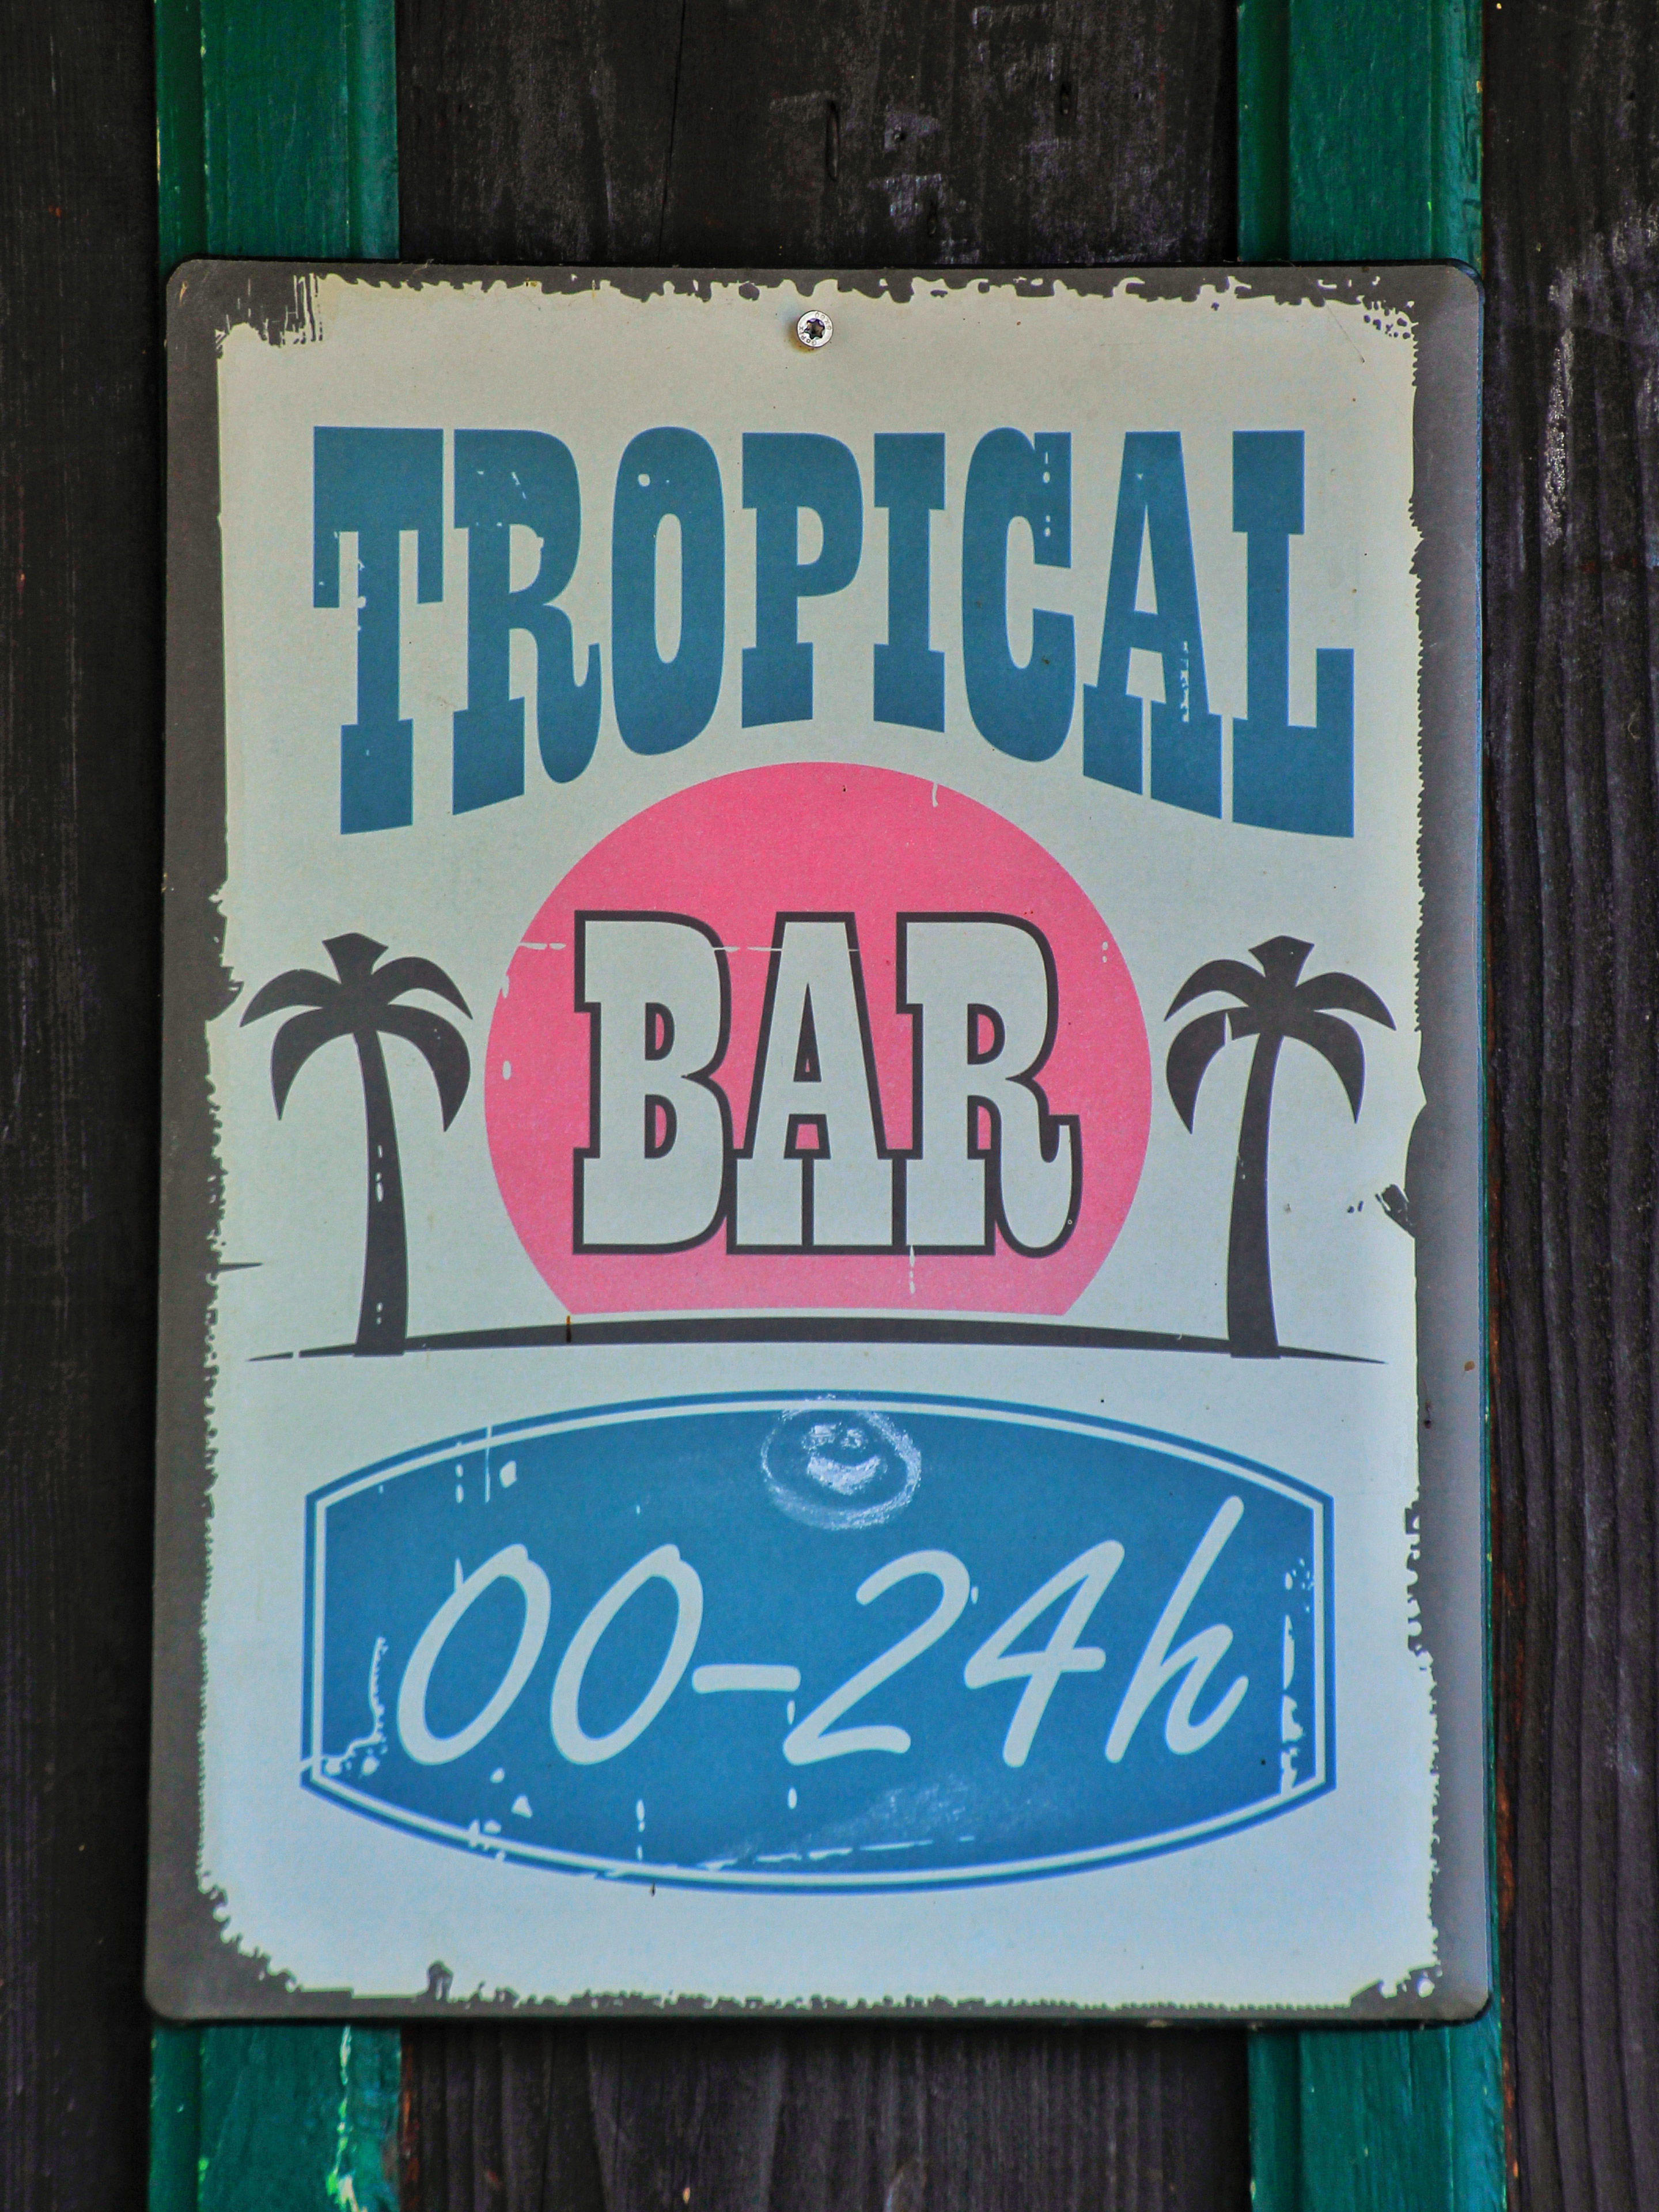 Strandbad Schild Tropical